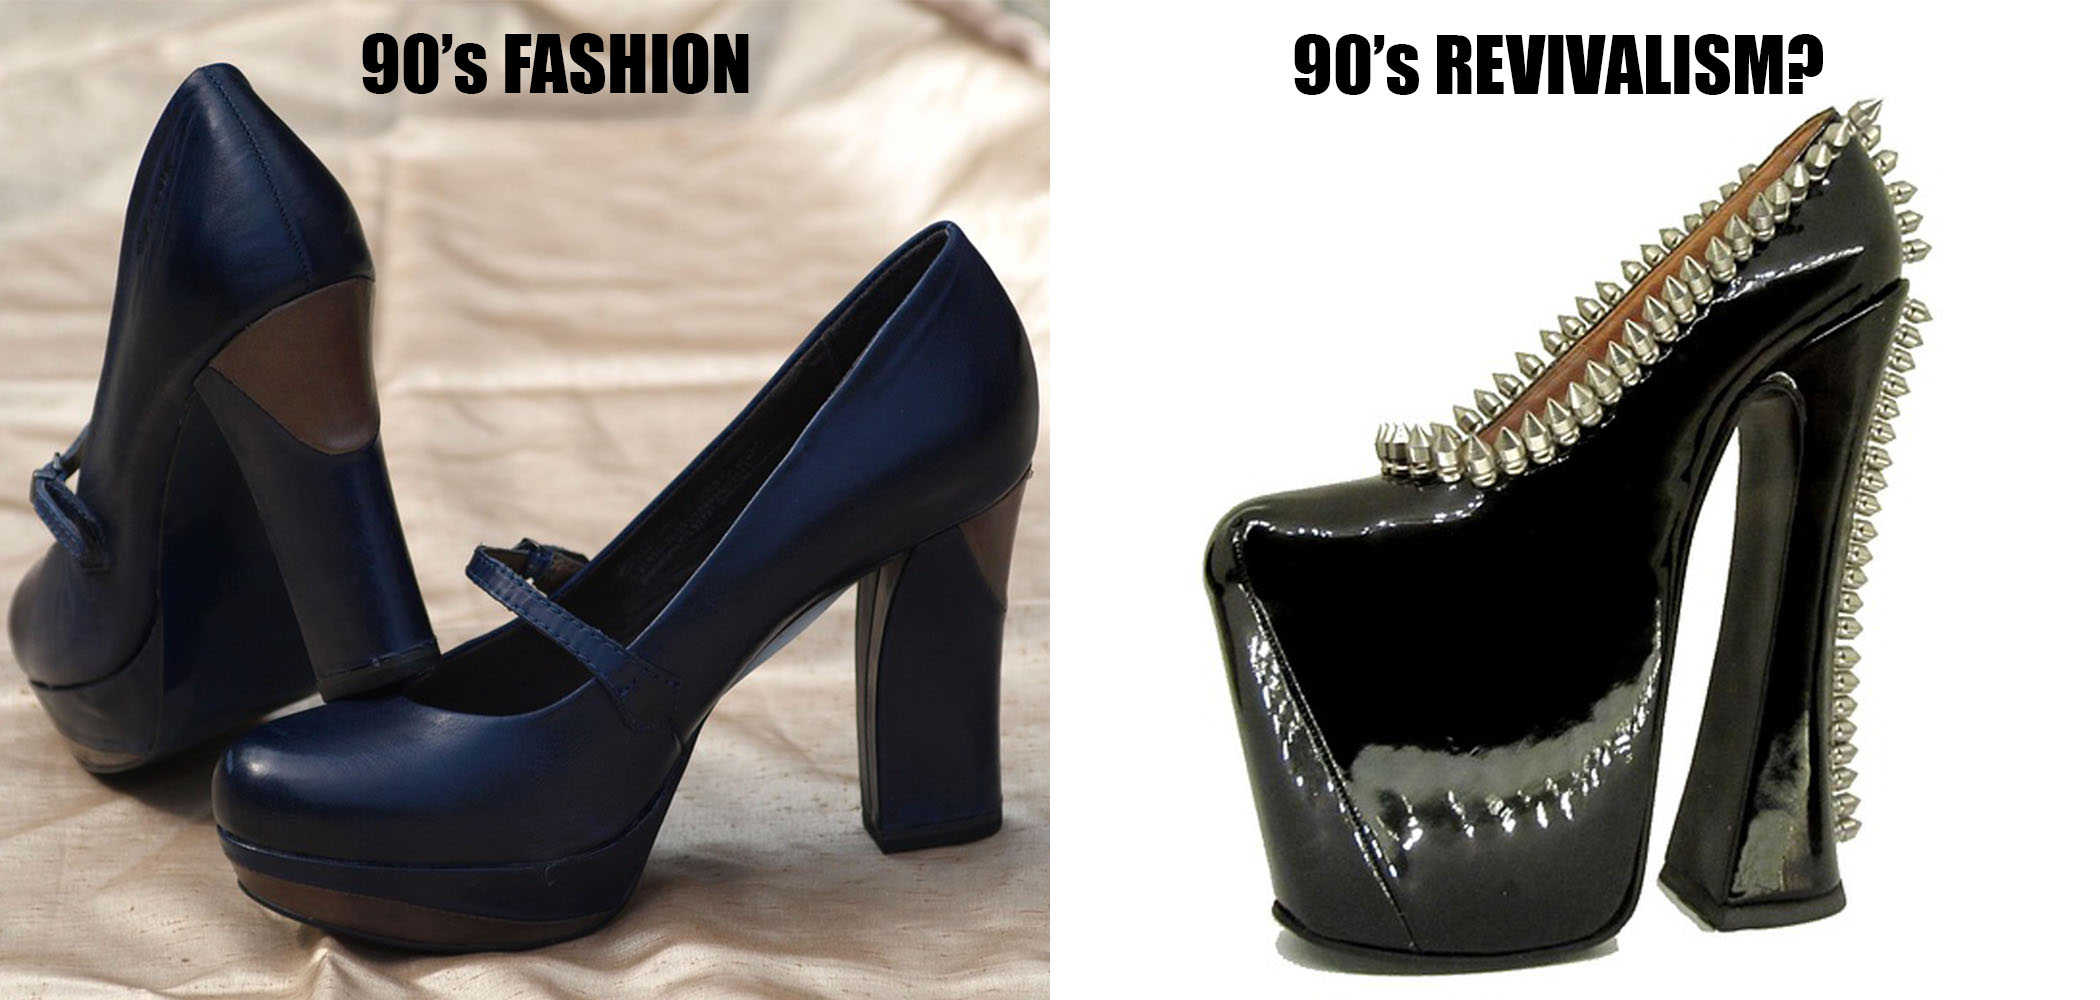 meme of fashionable shoes and a revived style